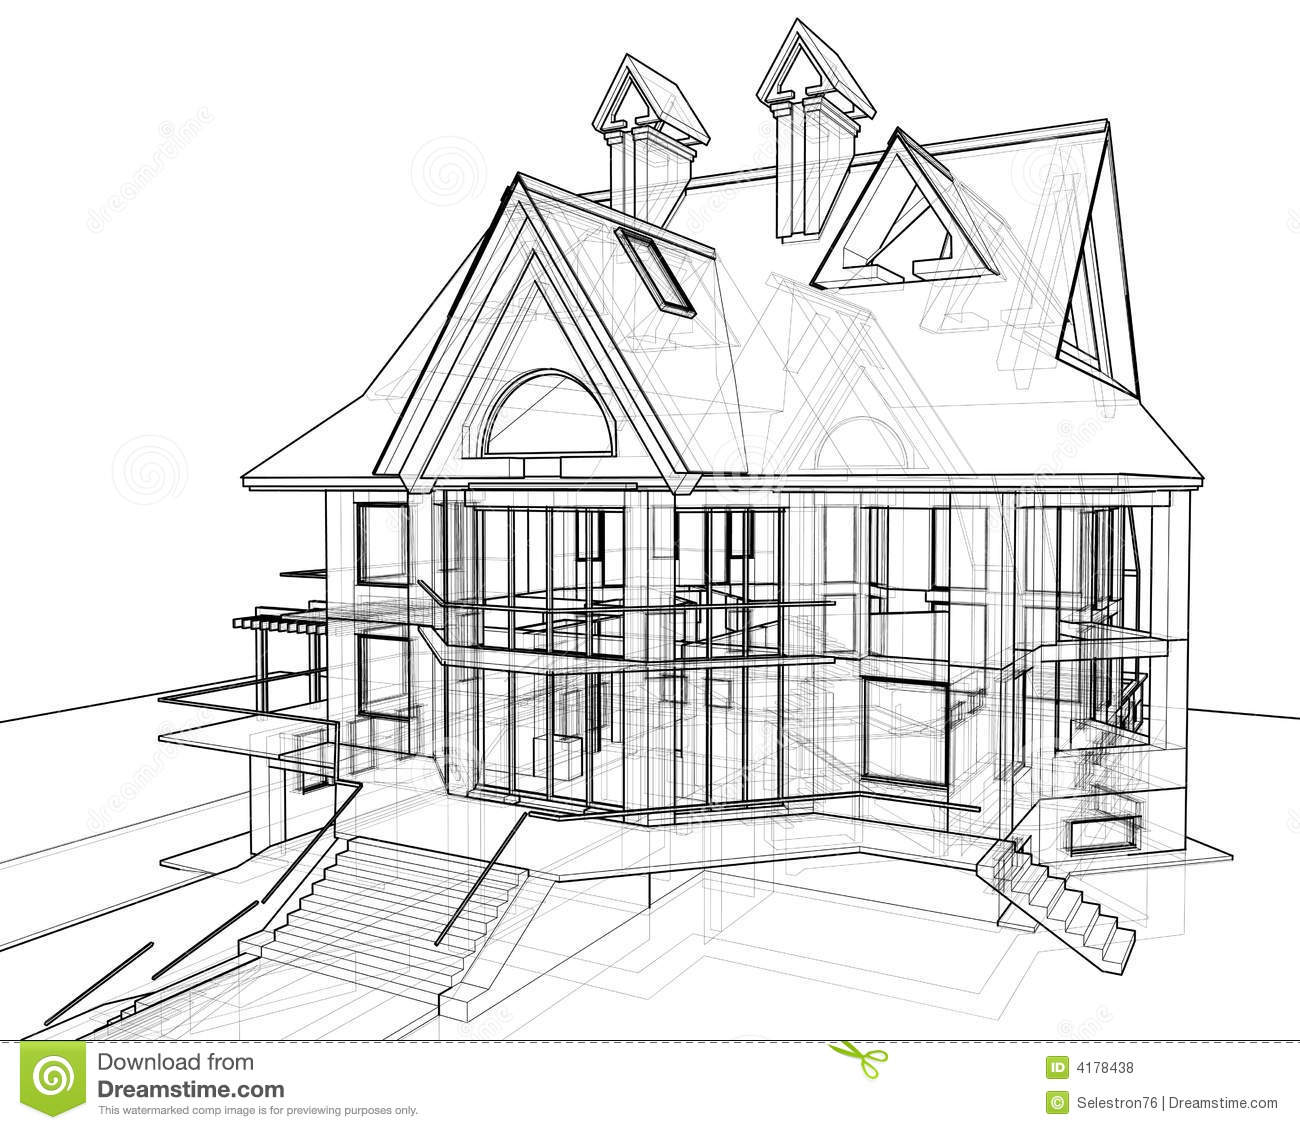 House technical draw stock illustration illustration of for How to draw house blueprints